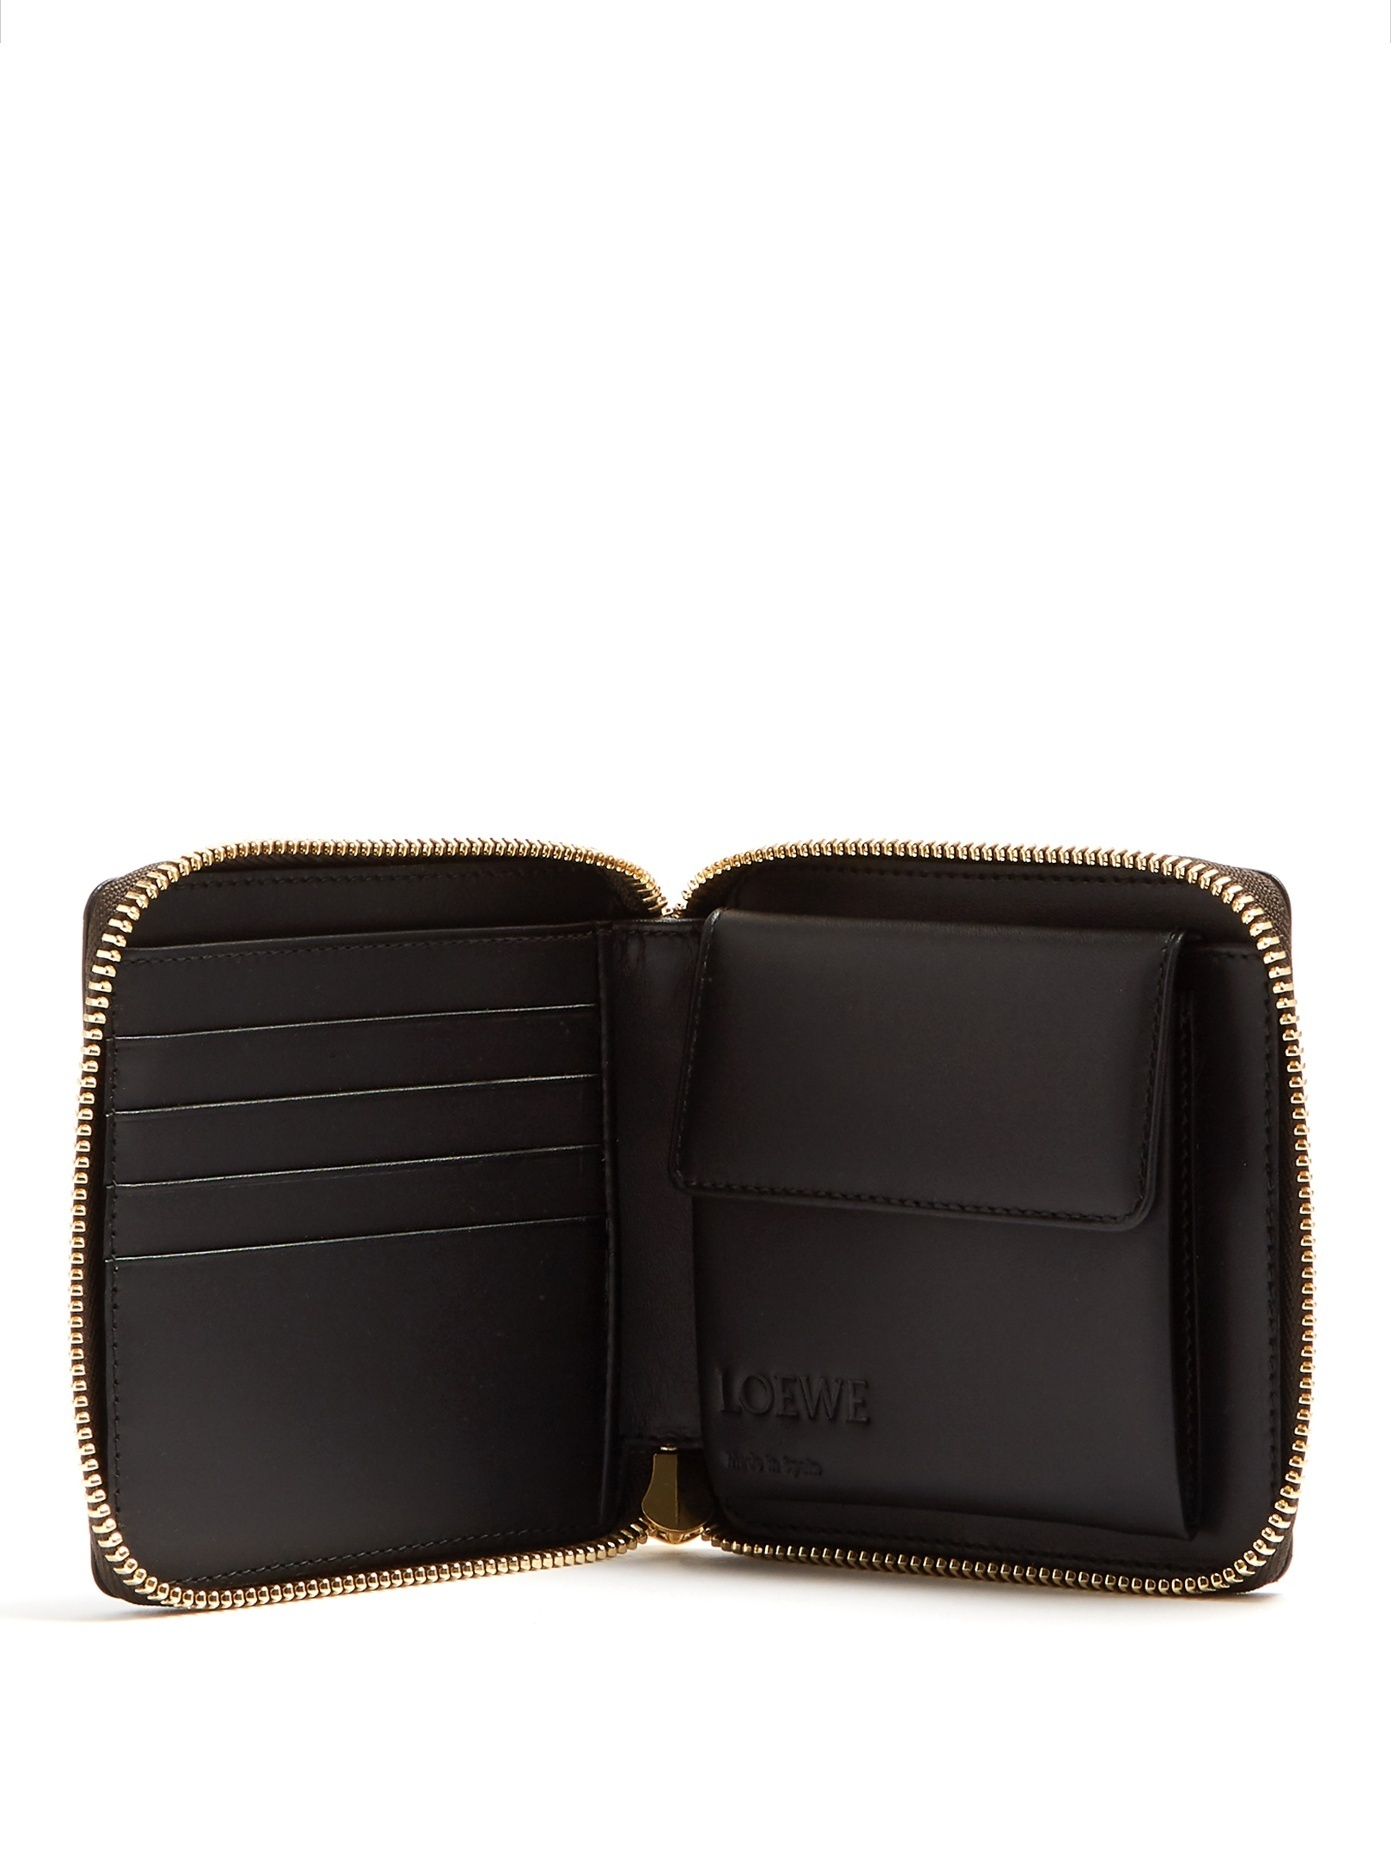 ★LOEWE★Puzzle zip around Small Wallet